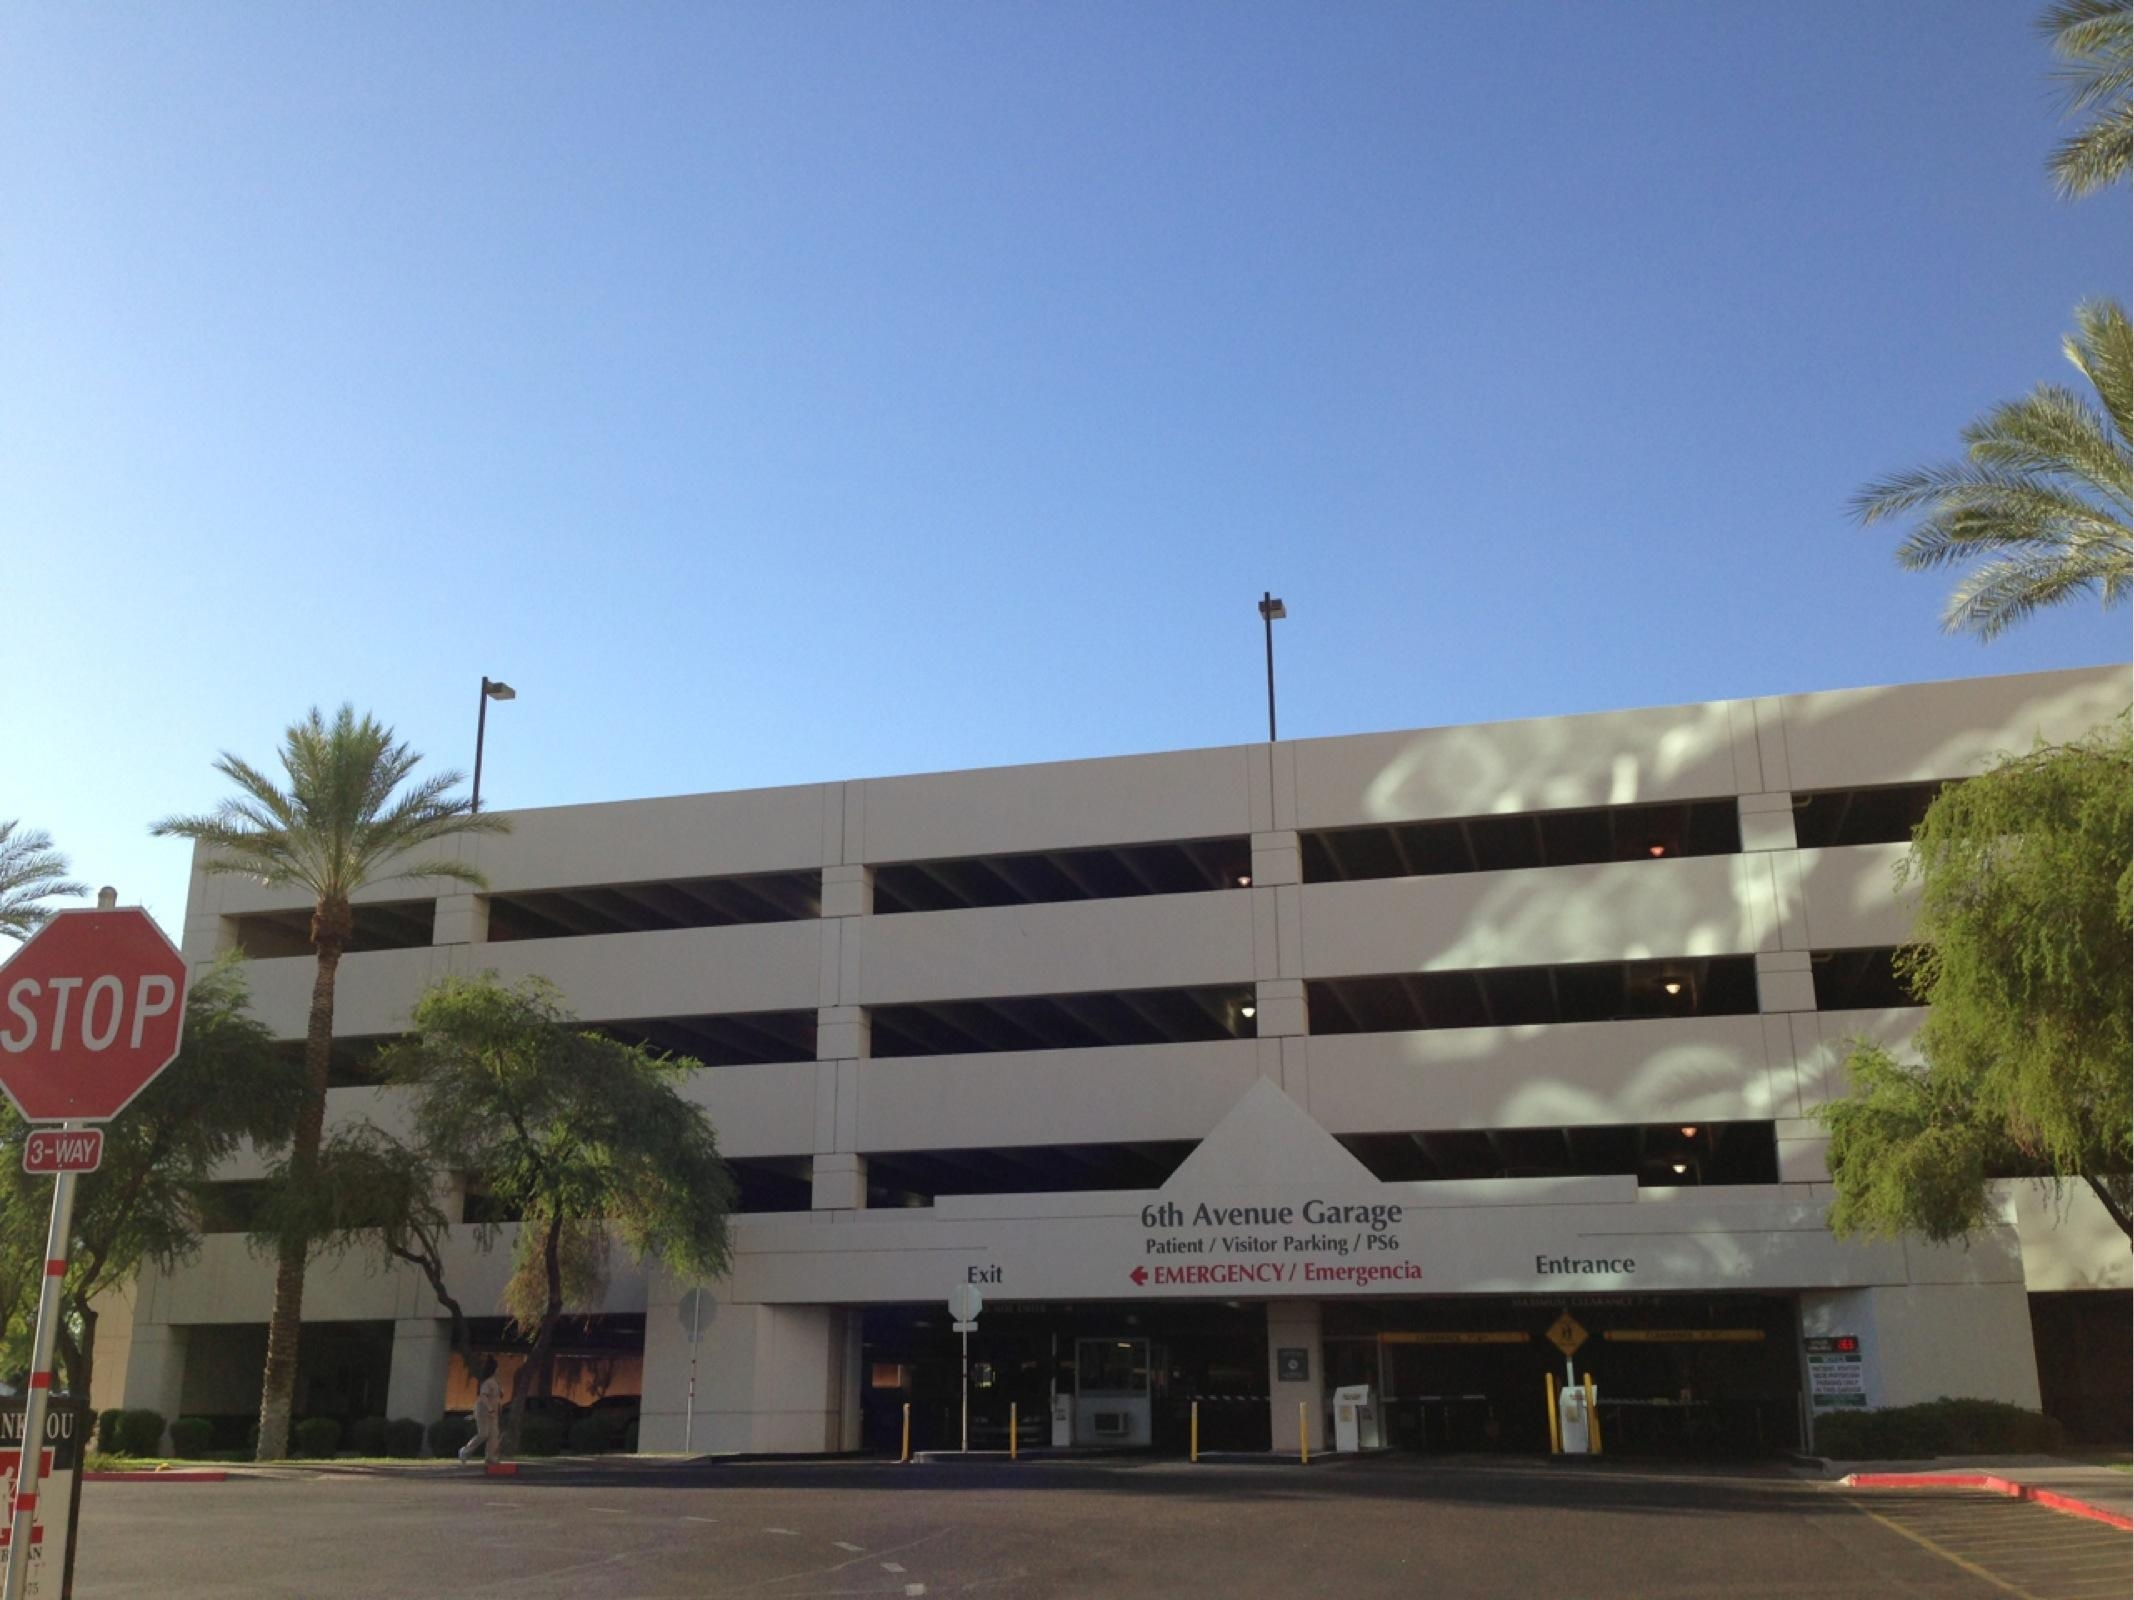 Photo of St Joseph's Medical Center - Stockton, CA, United States